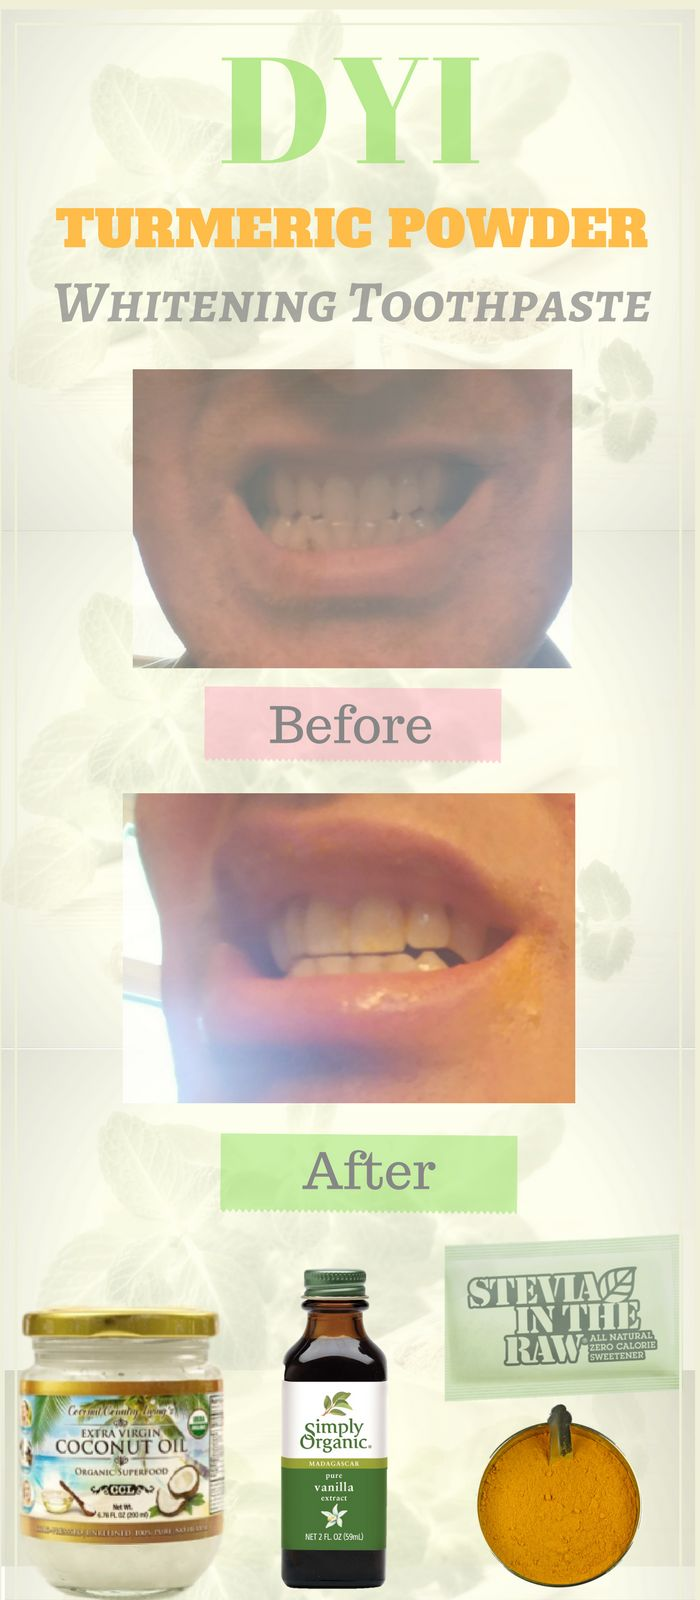 """Check it out --> http://wp.me/p5BOvk-A9 Seen any turmeric benefits outside of using curcumin? Some of the best natural beauy tips actually come from knowing how to use coconut oil & turmeric for natural teeth whitening. gum health, bad breath, and cavities: Turmeric and coconut oil, in fact, is a replacement for dangerous commercial """"natural"""" toothpastes. But honestly, even whitening teeth with turmeric v hydrogen peroxide & baking soda to make your teeth white is no contest. Check it out."""